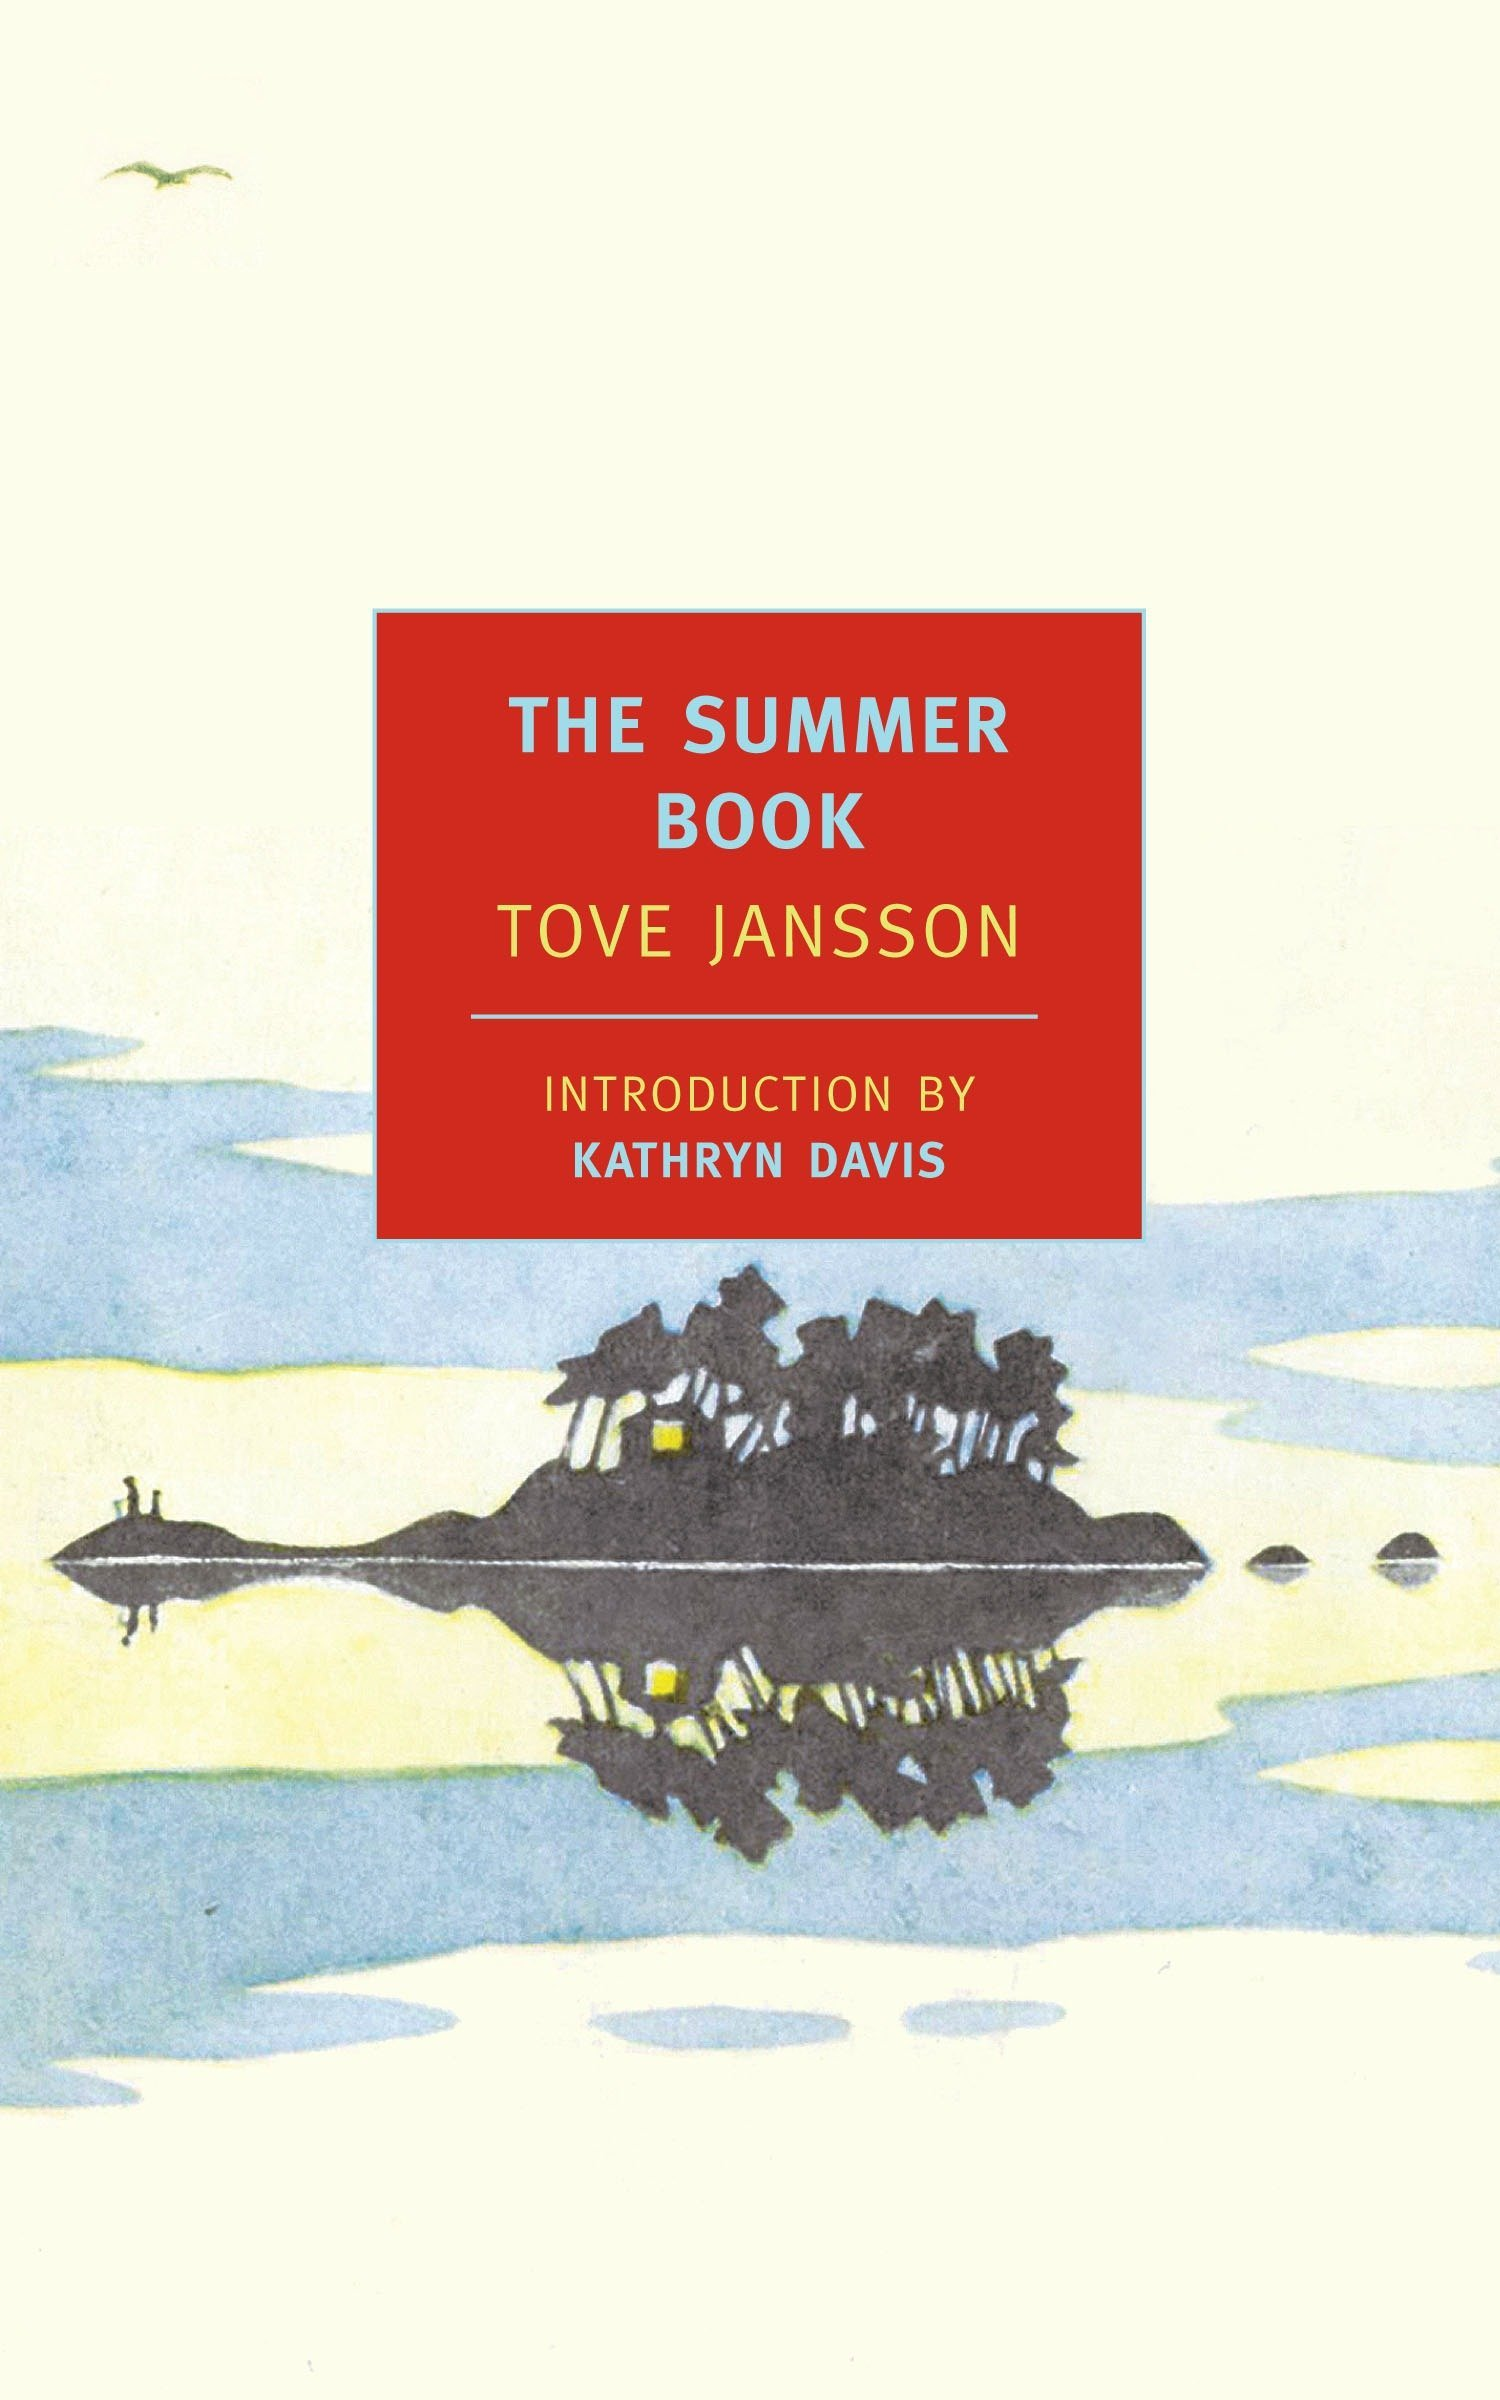 The Summer Book, by Tove Jansson